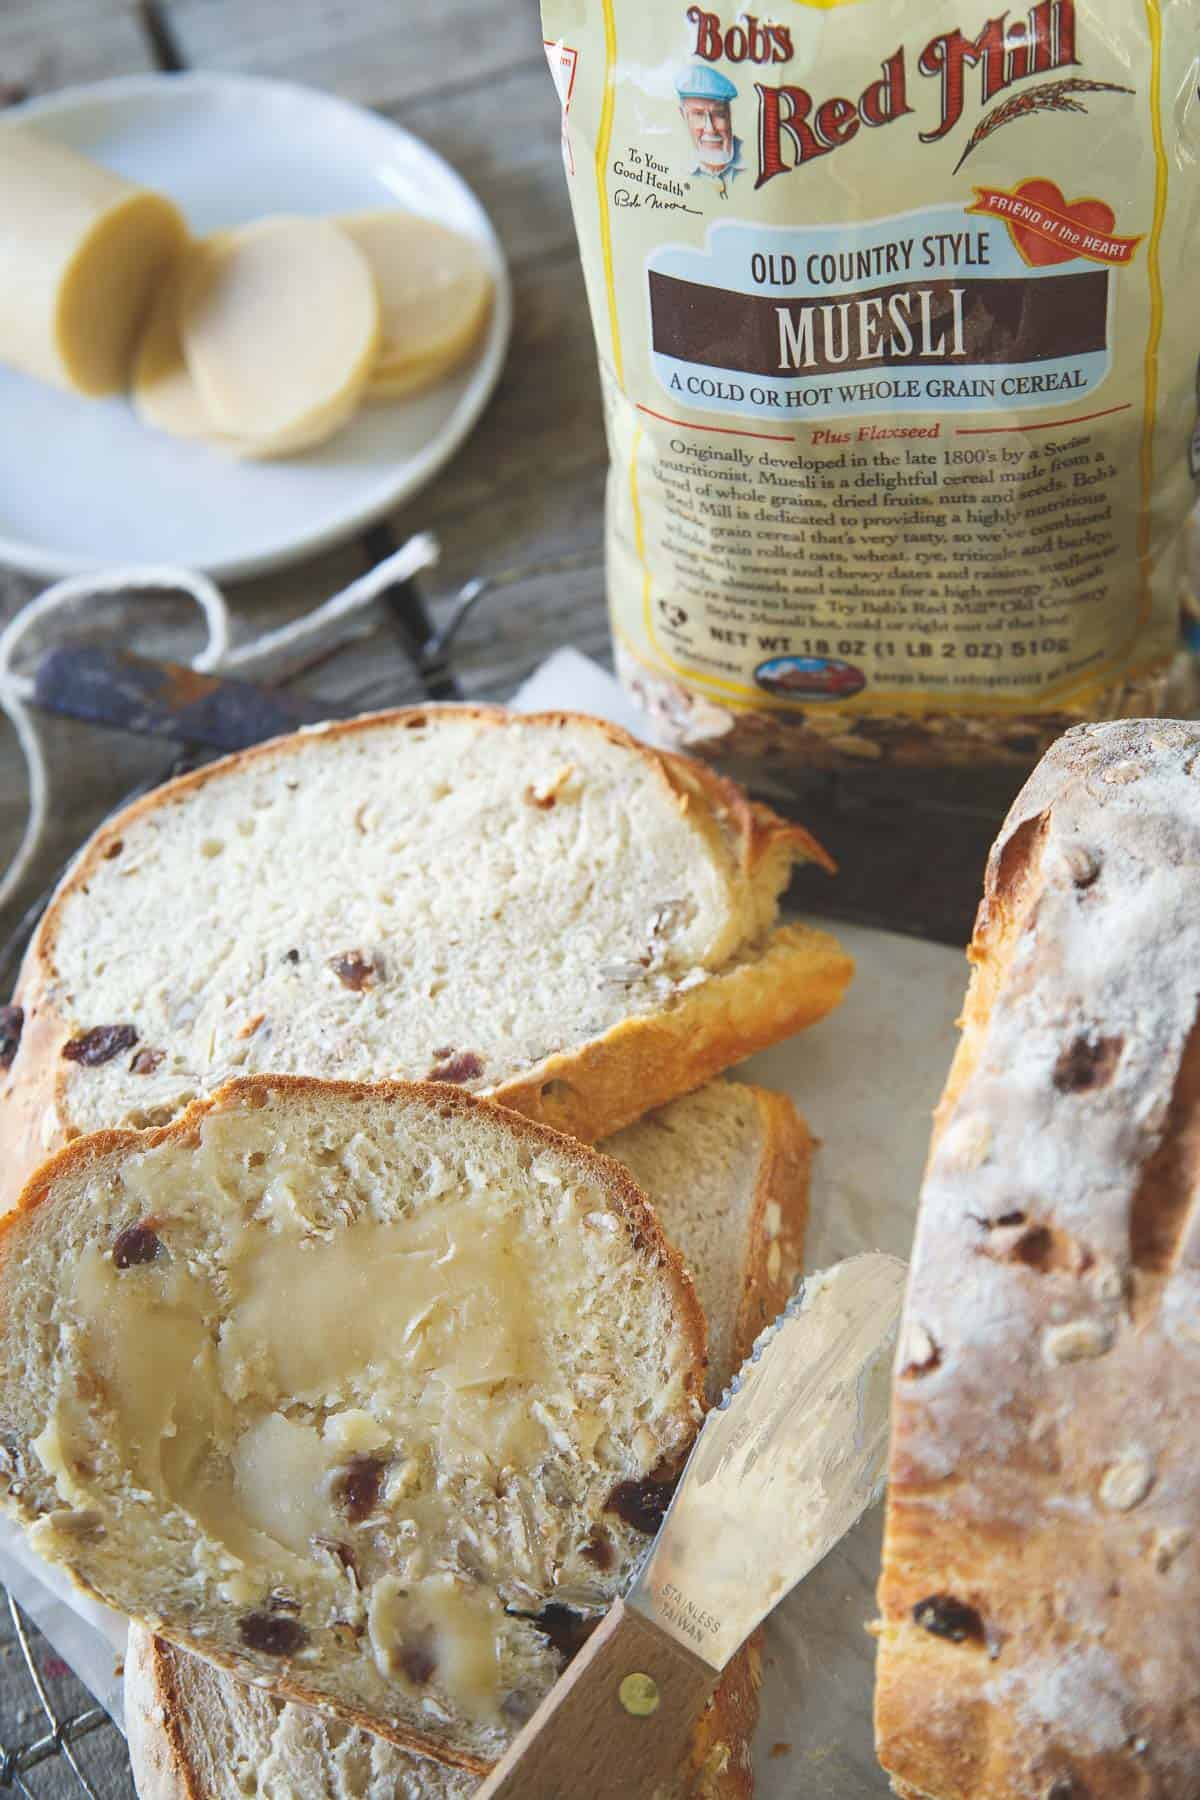 Enjoy this museli bread straight out of the oven with some butter and you're in for a treat!